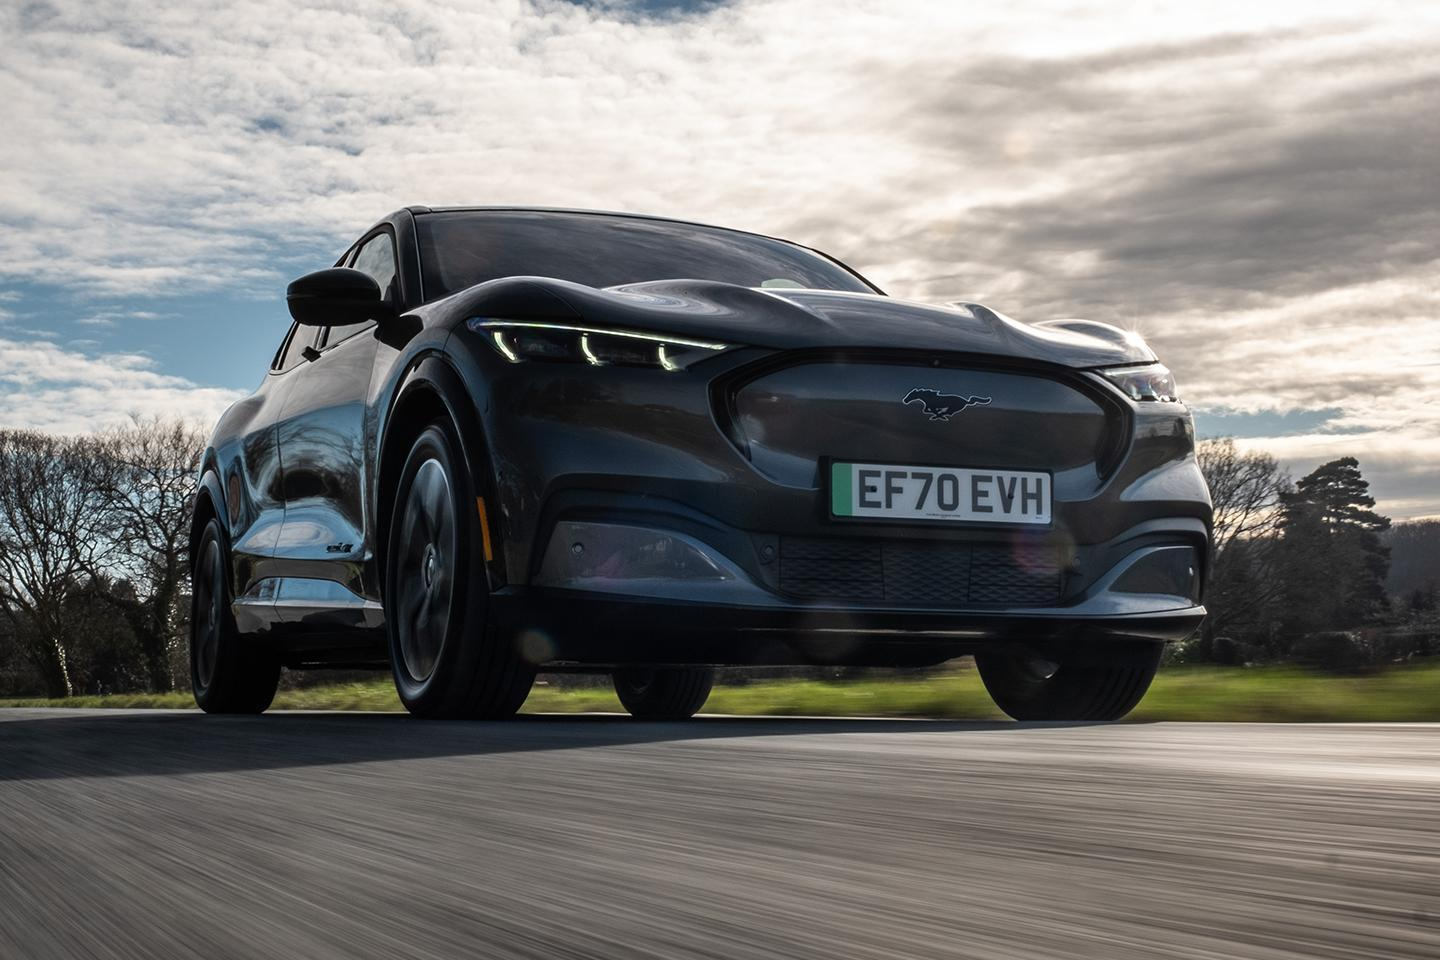 Re 2021 Ford Mustang Mach E Ph Road Test Page 1 General Gassing Pistonheads Uk [ 960 x 1440 Pixel ]